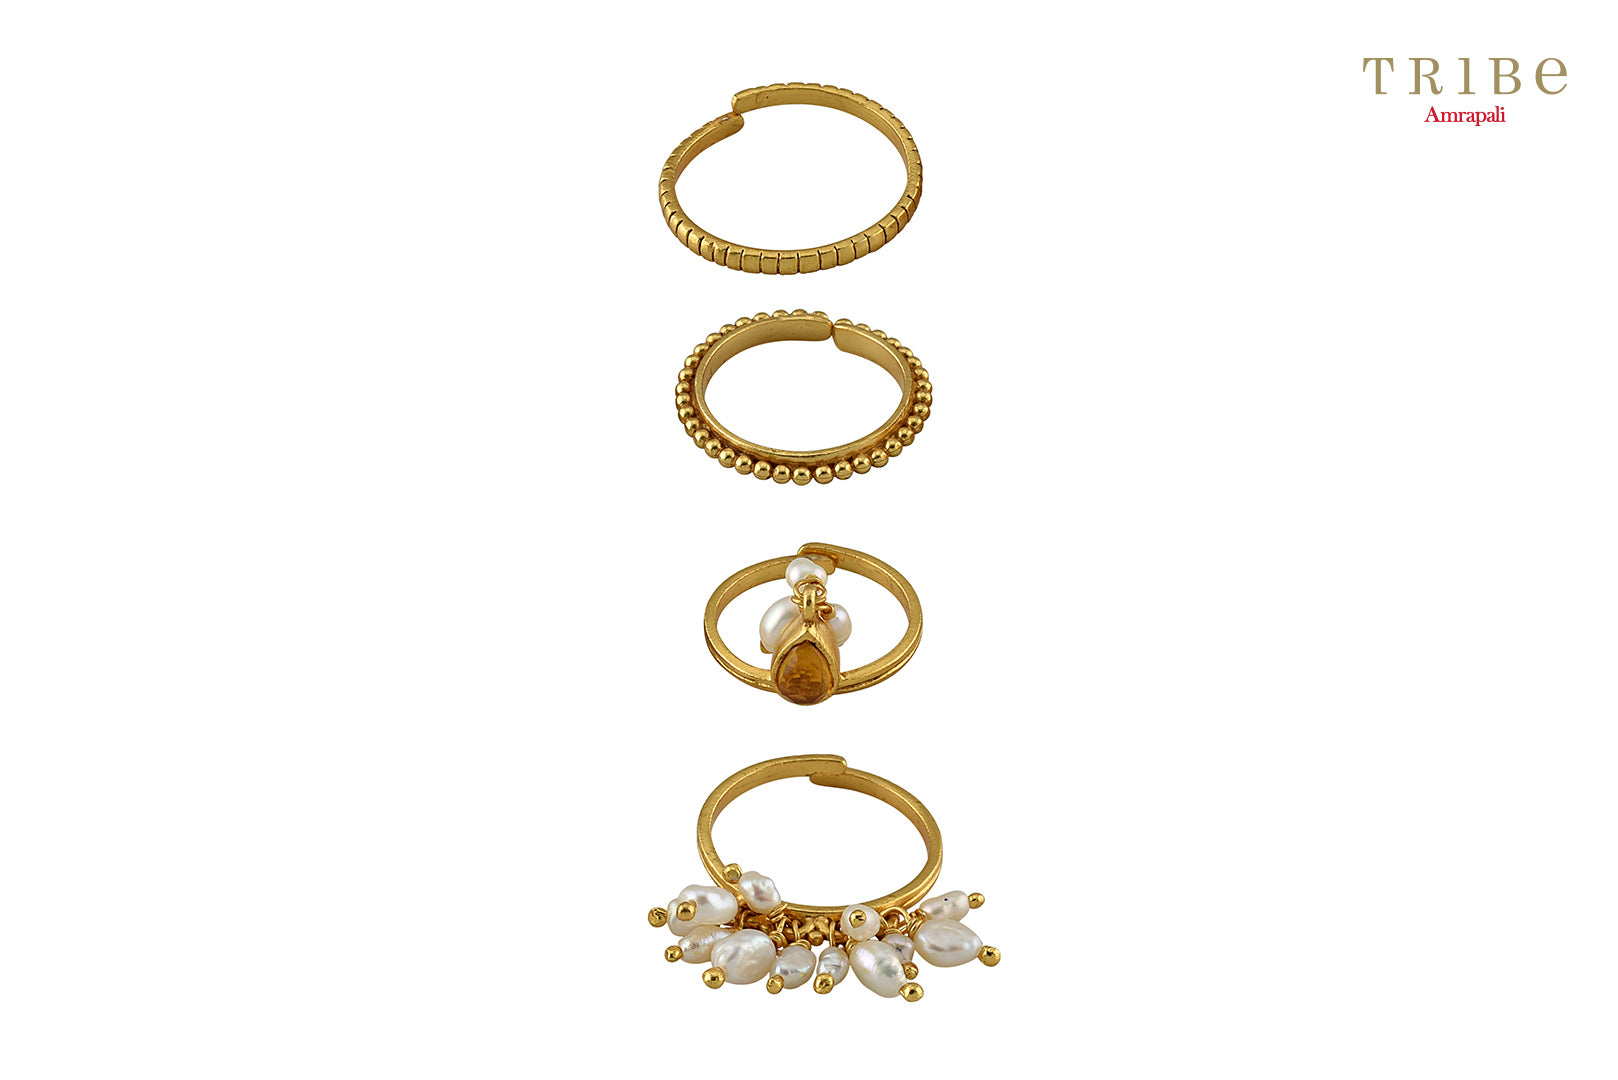 Buy silver gold plated pearl citrine stacking rings online in USA by Amrapali. The delicate rings are a perfect way to decorate your hands. If you want to shop such ethnic Indian silver gold plated jewelry in USA, then look no further than Pure Elegance. You can shop at our exclusive fashion store or online.-full view